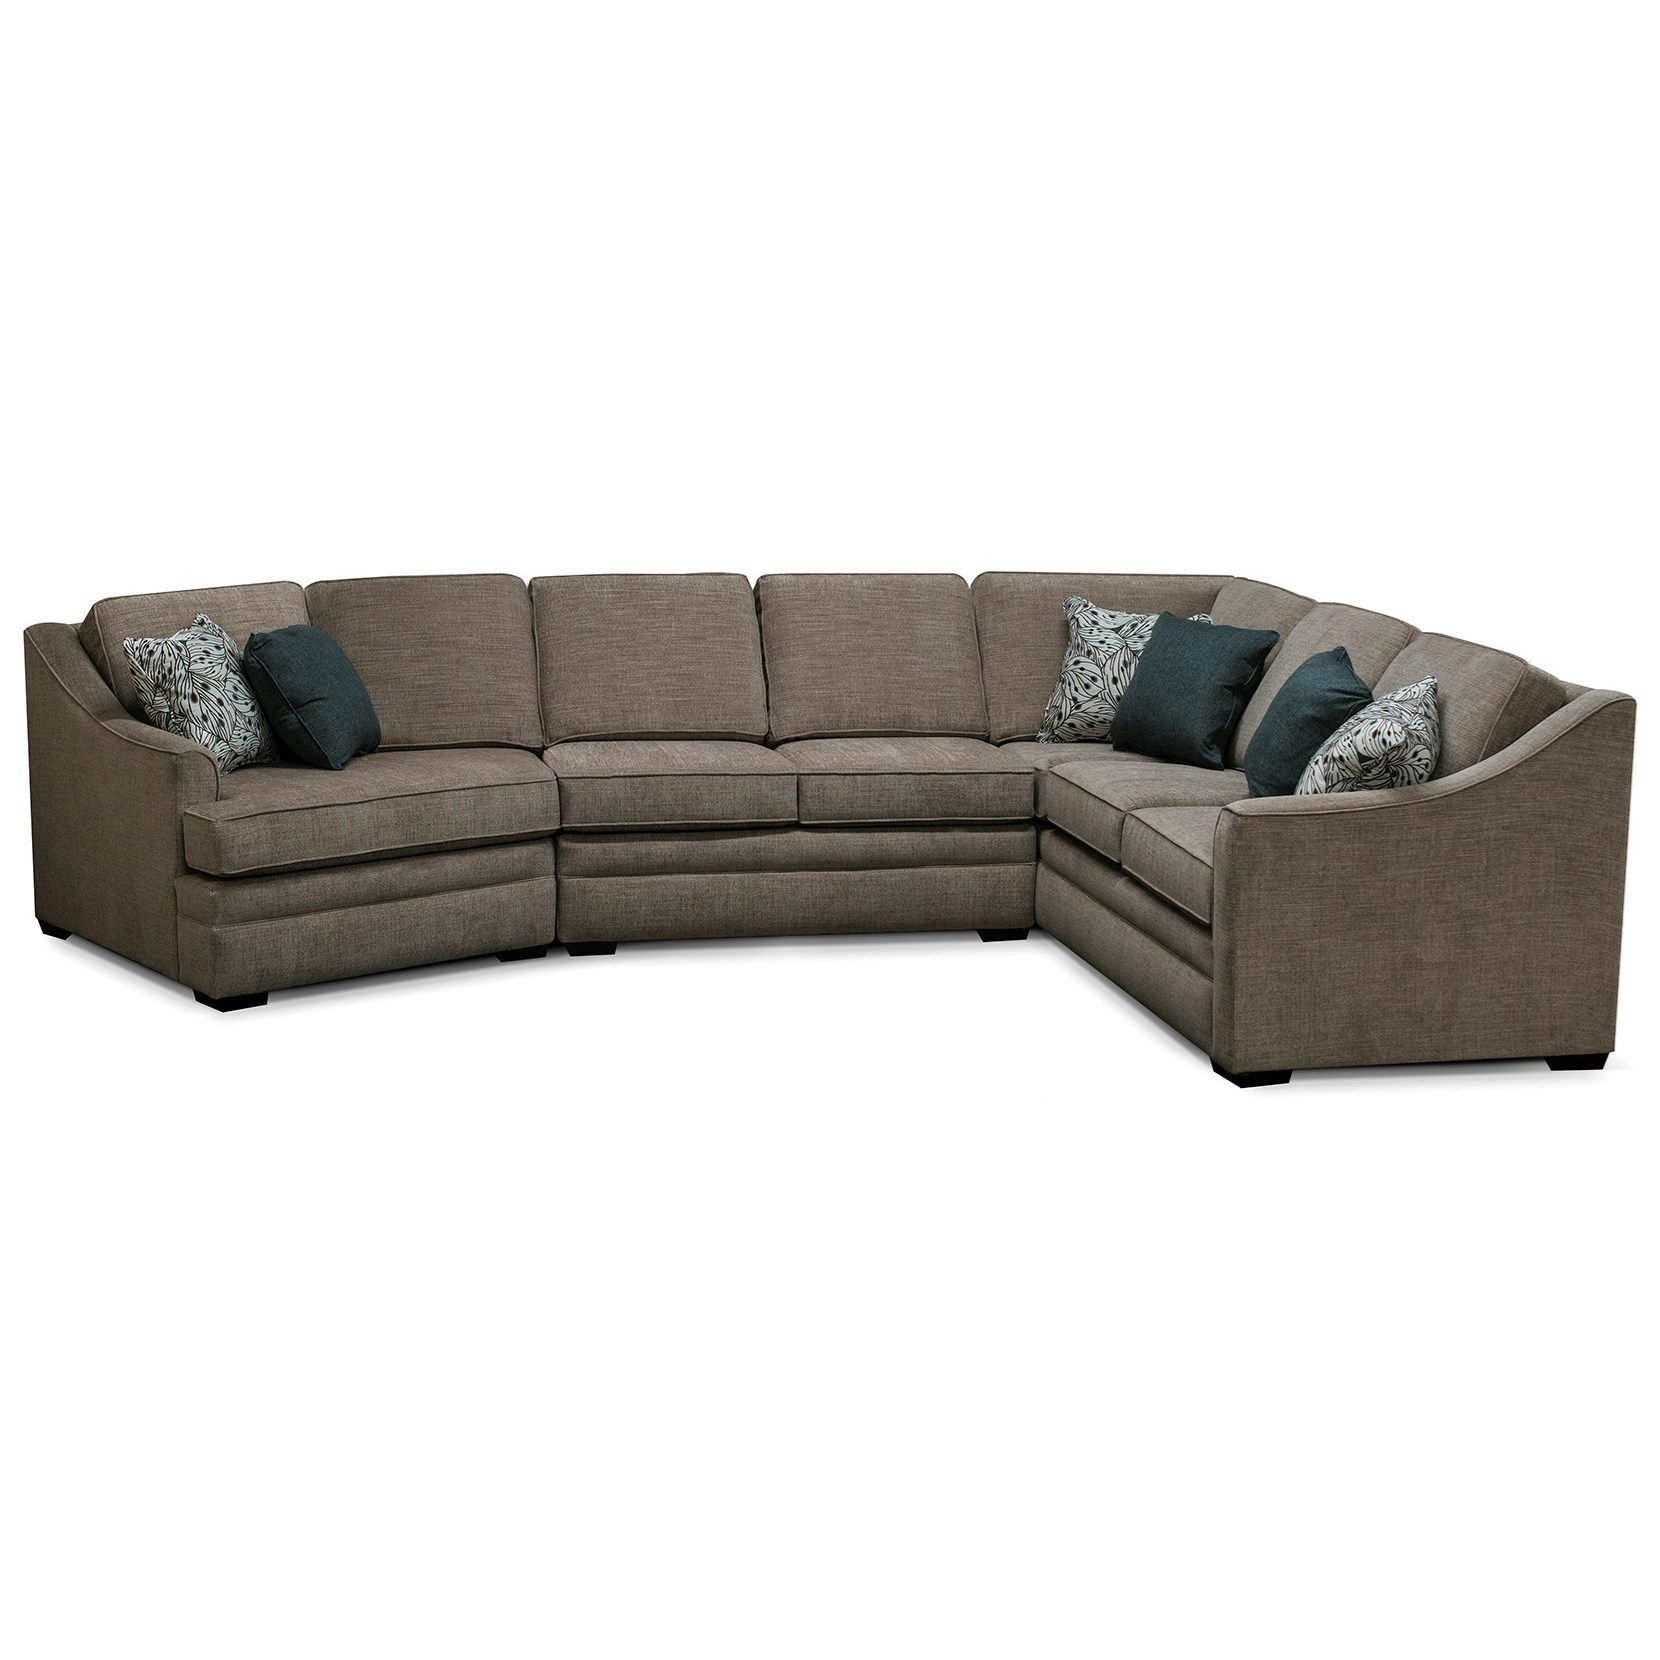 V4T0 3-Piece Sectional by Alexvale at Northeast Factory Direct